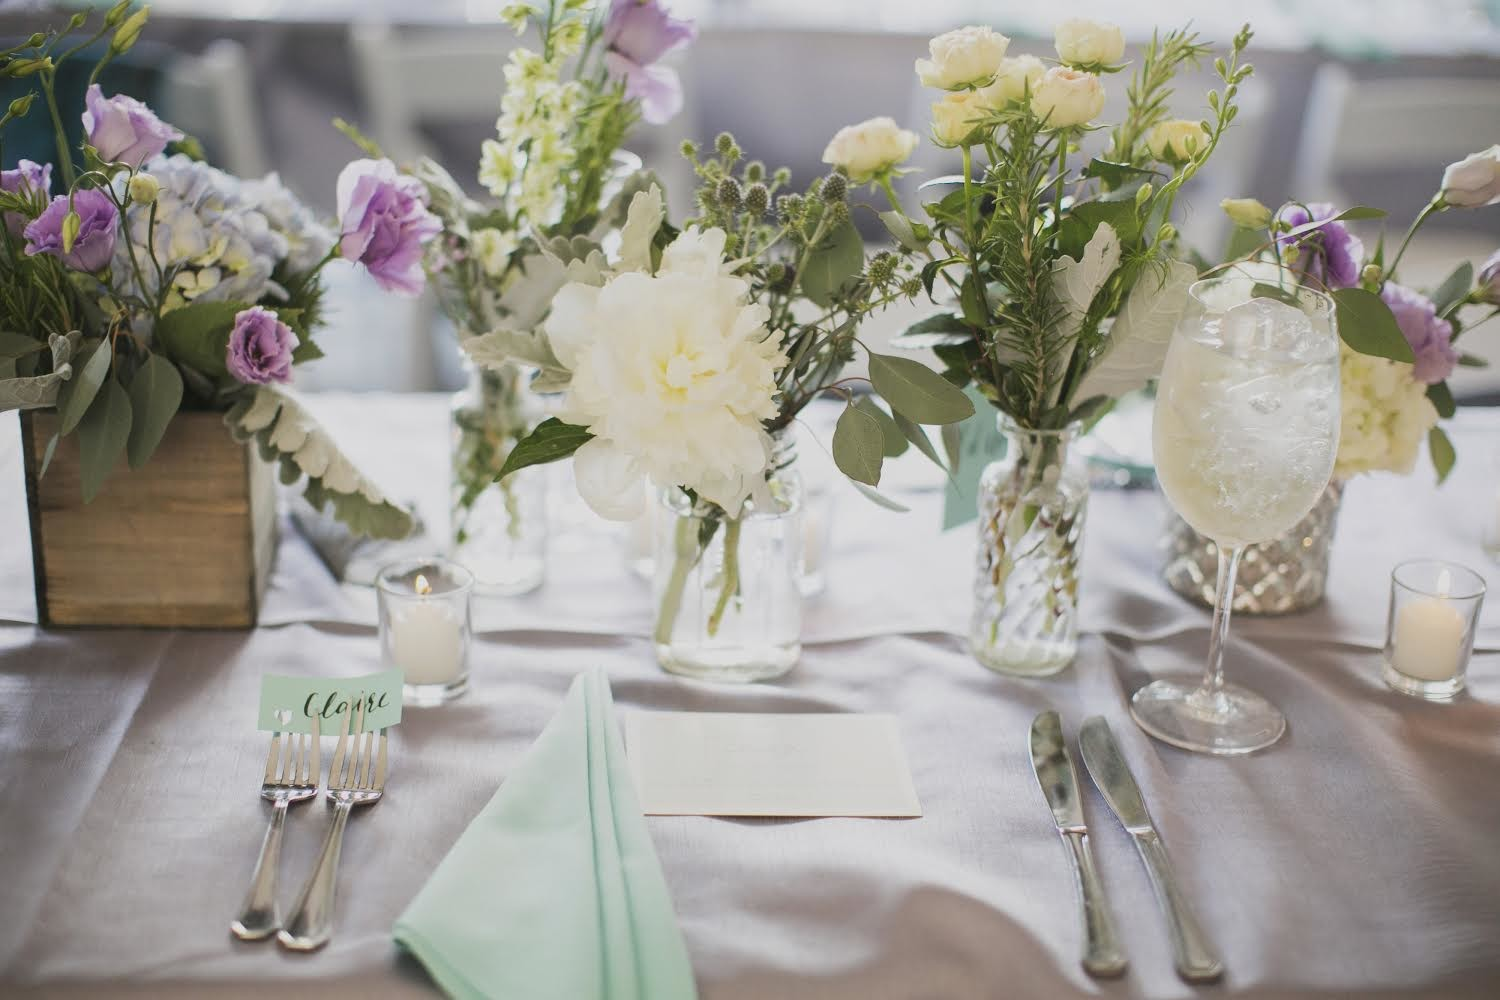 Awesome Wildflowers For Wedding Centerpieces Mold - Wedding Idea ...